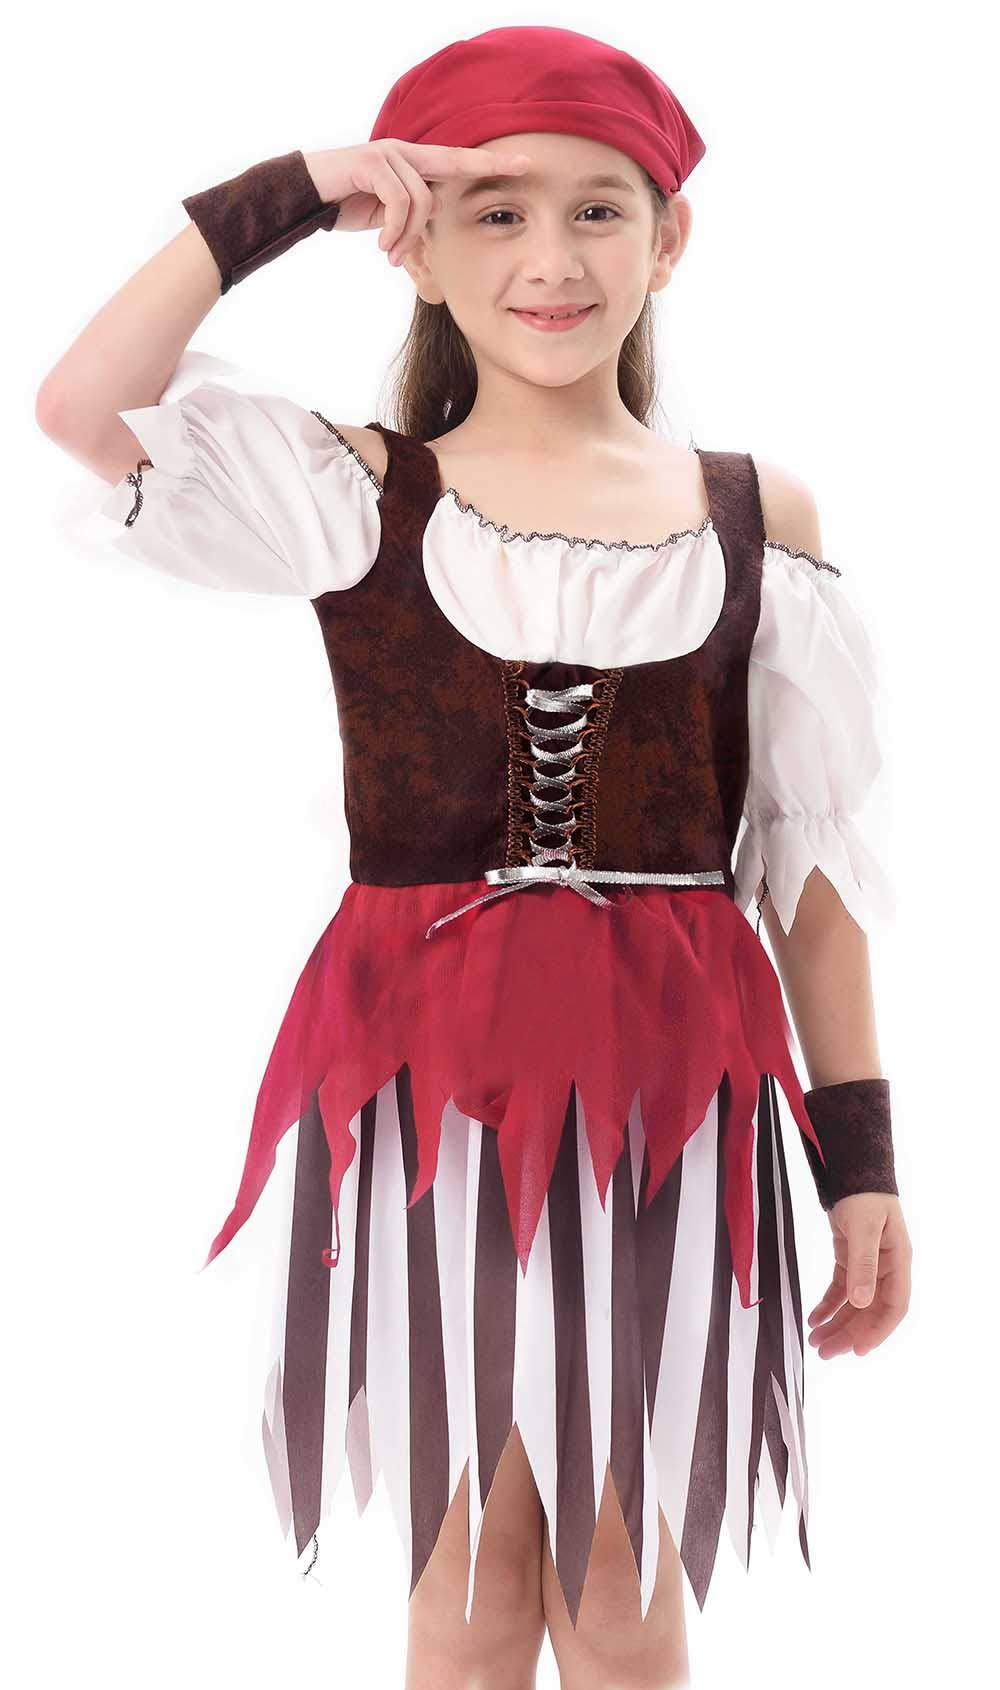 IKALI Baby Toddler Girl Pirate High Seas Buccaneer Costume Party Decoration Toy Kids Pretend Play Pirate Fancy Dress (6-8Y)